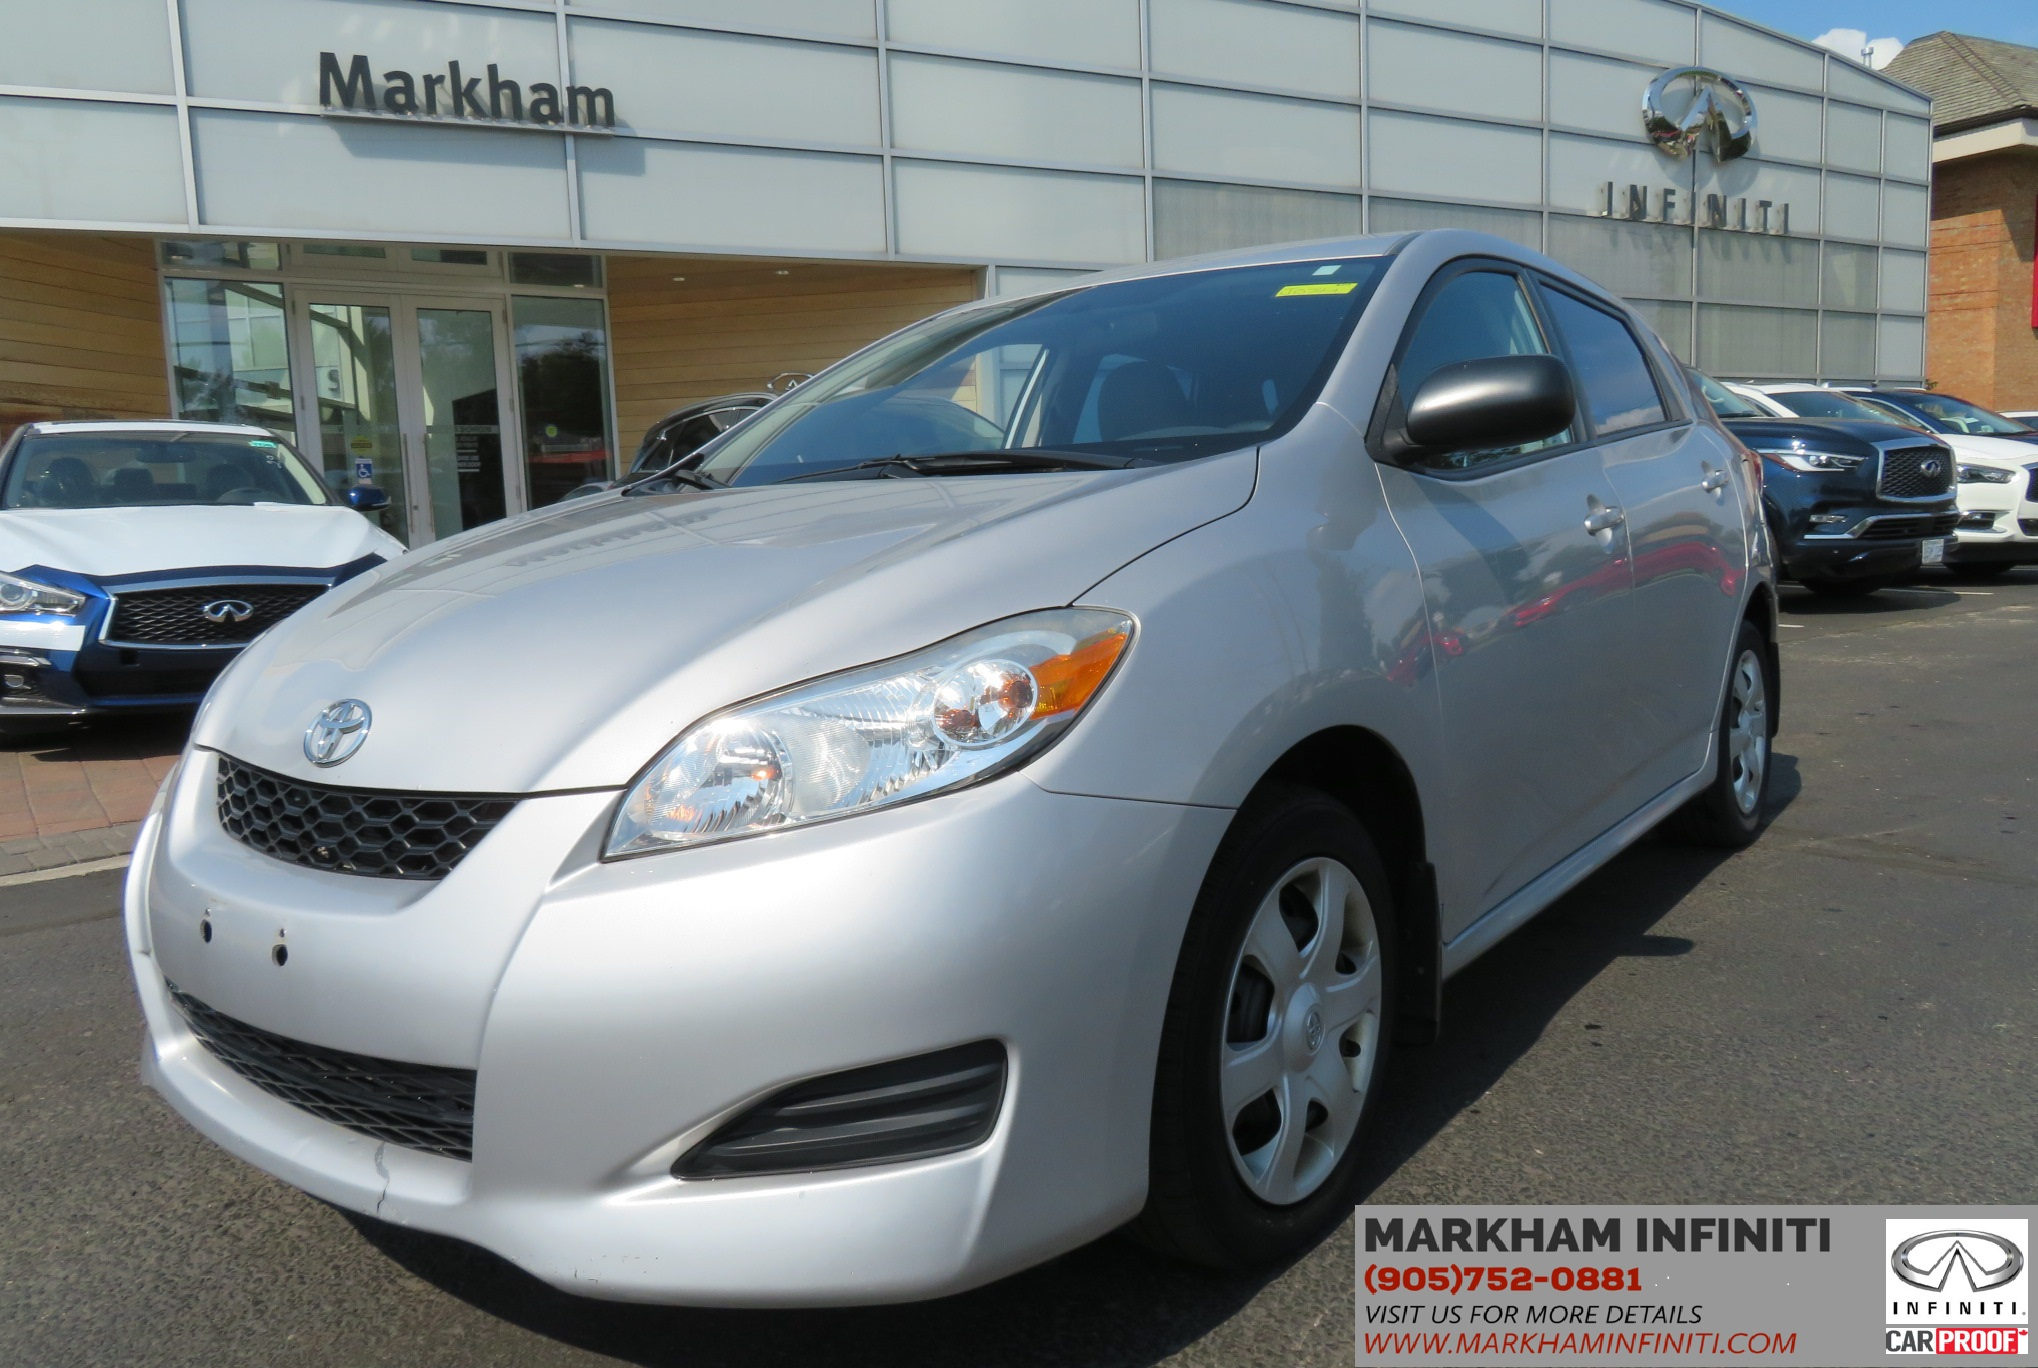 Used 2010 Toyota Matrix Base For Sale in London, ON - CarGurus